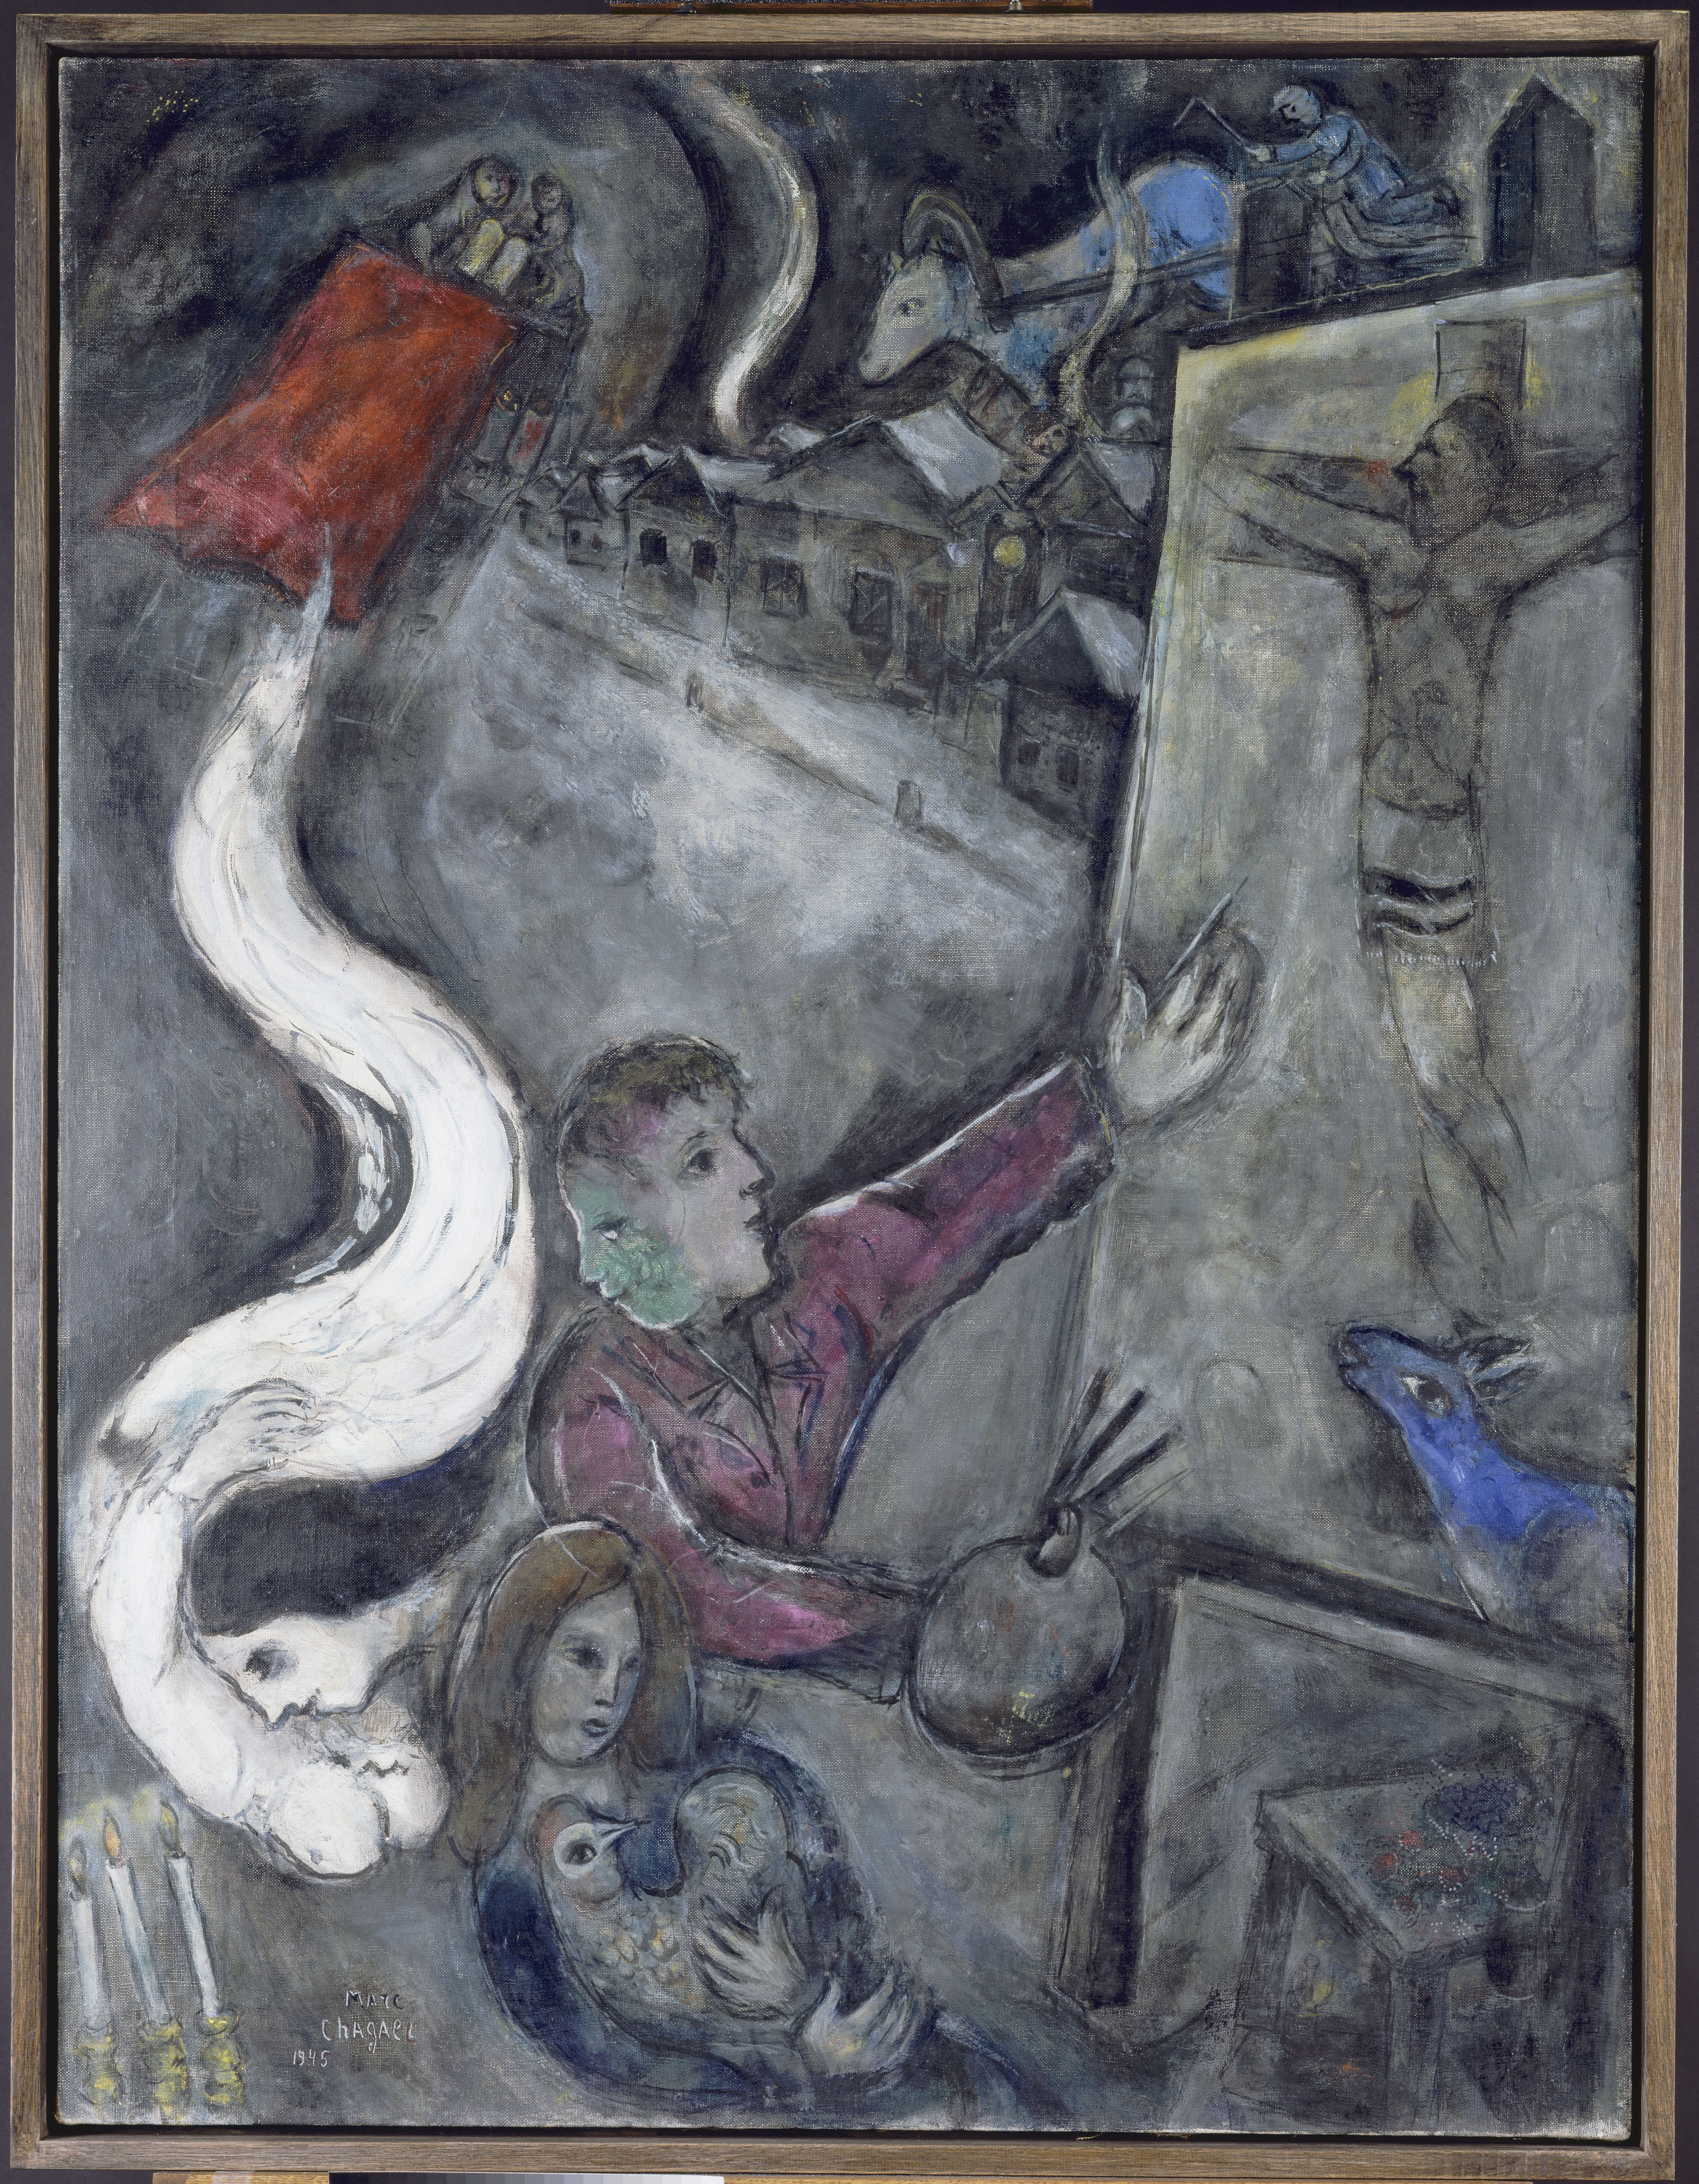 A Surprisingly Dark Side Of Marc Chagall Heads To Jewish ... Marc Chagall White Crucifixion Poem